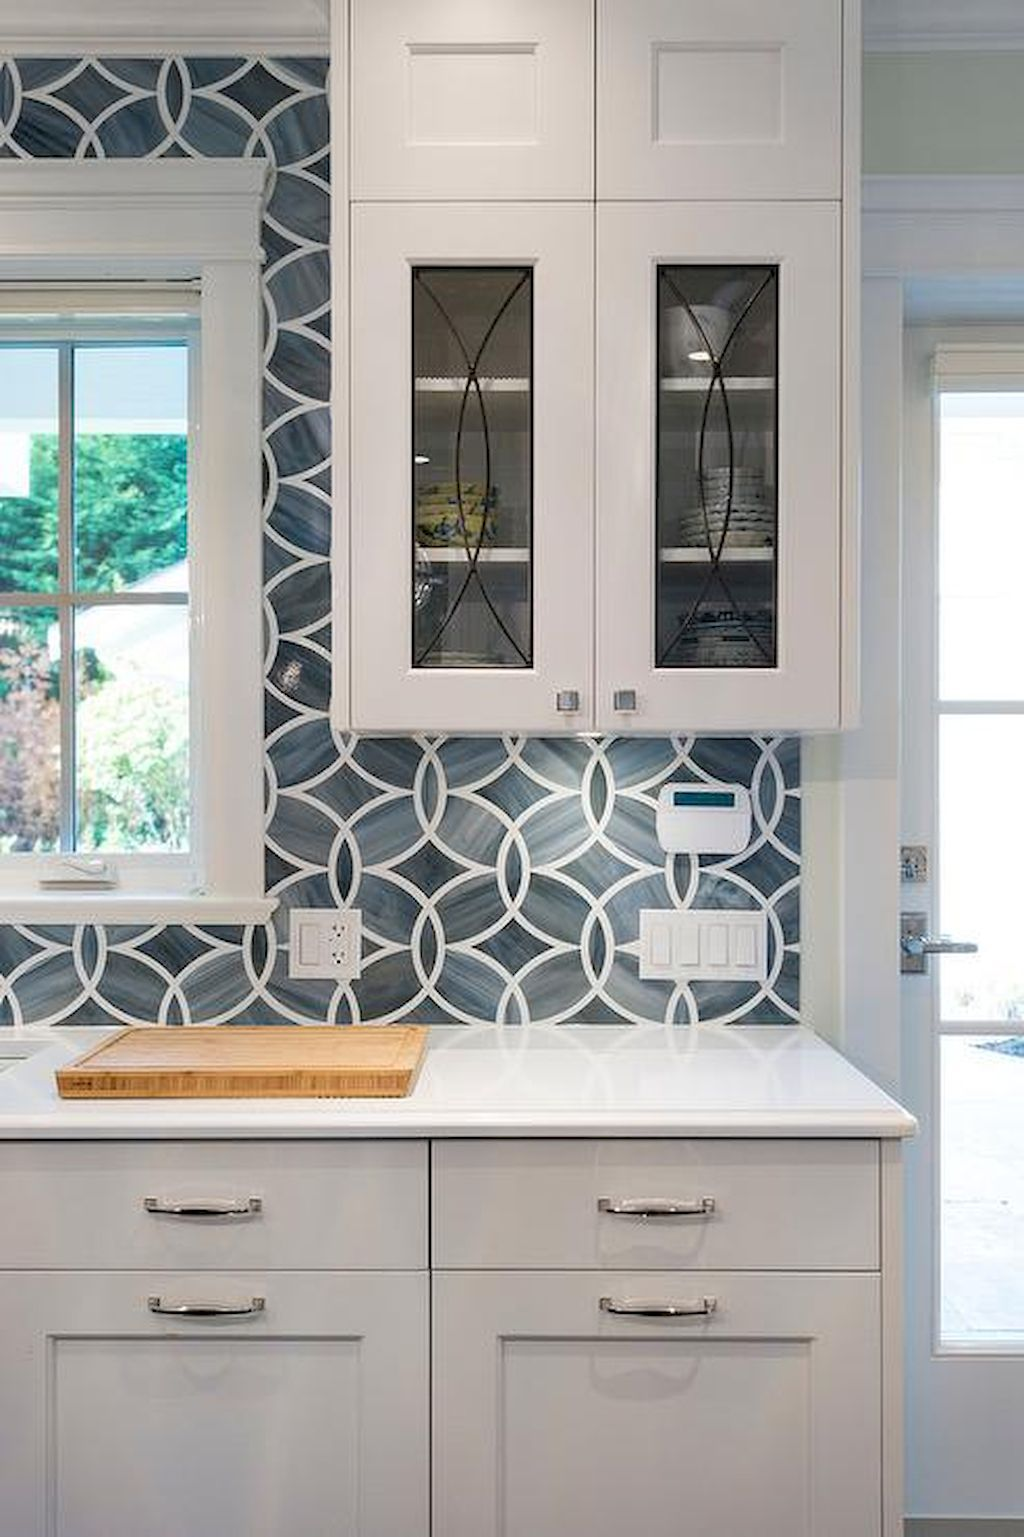 Beautiful Kitchen Backsplash Tile Patterns Ideas 26 Cwg Architects